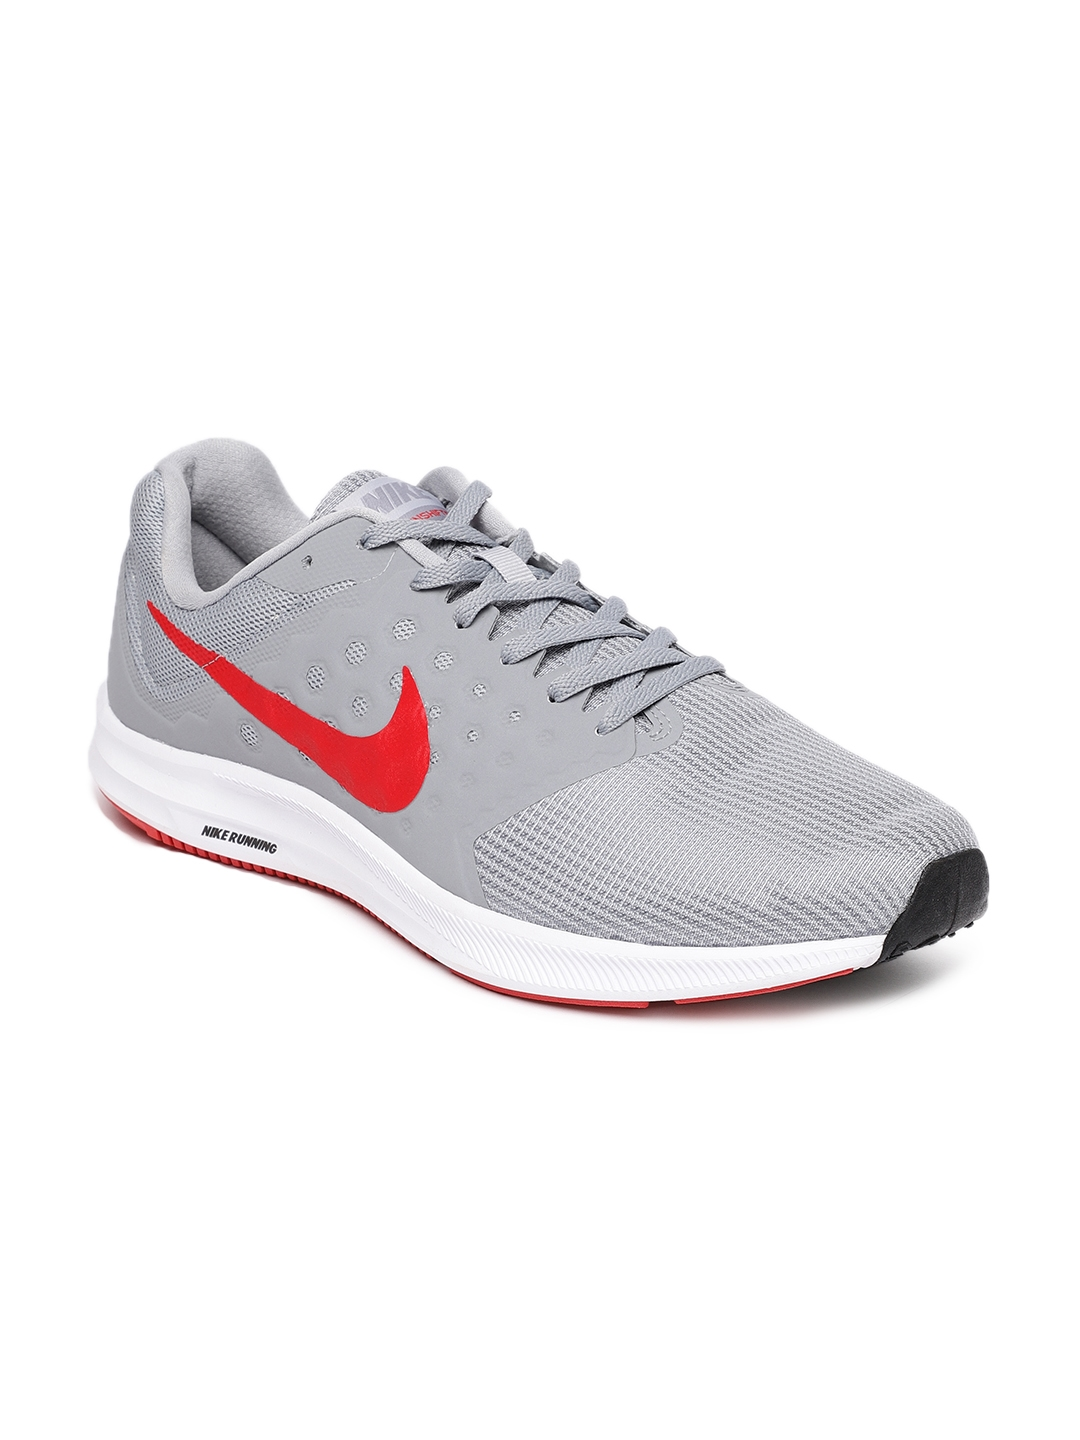 Buy Nike Men Grey Downshifter 7 Running Shoes - Sports Shoes for Men ... e3d11db3c1